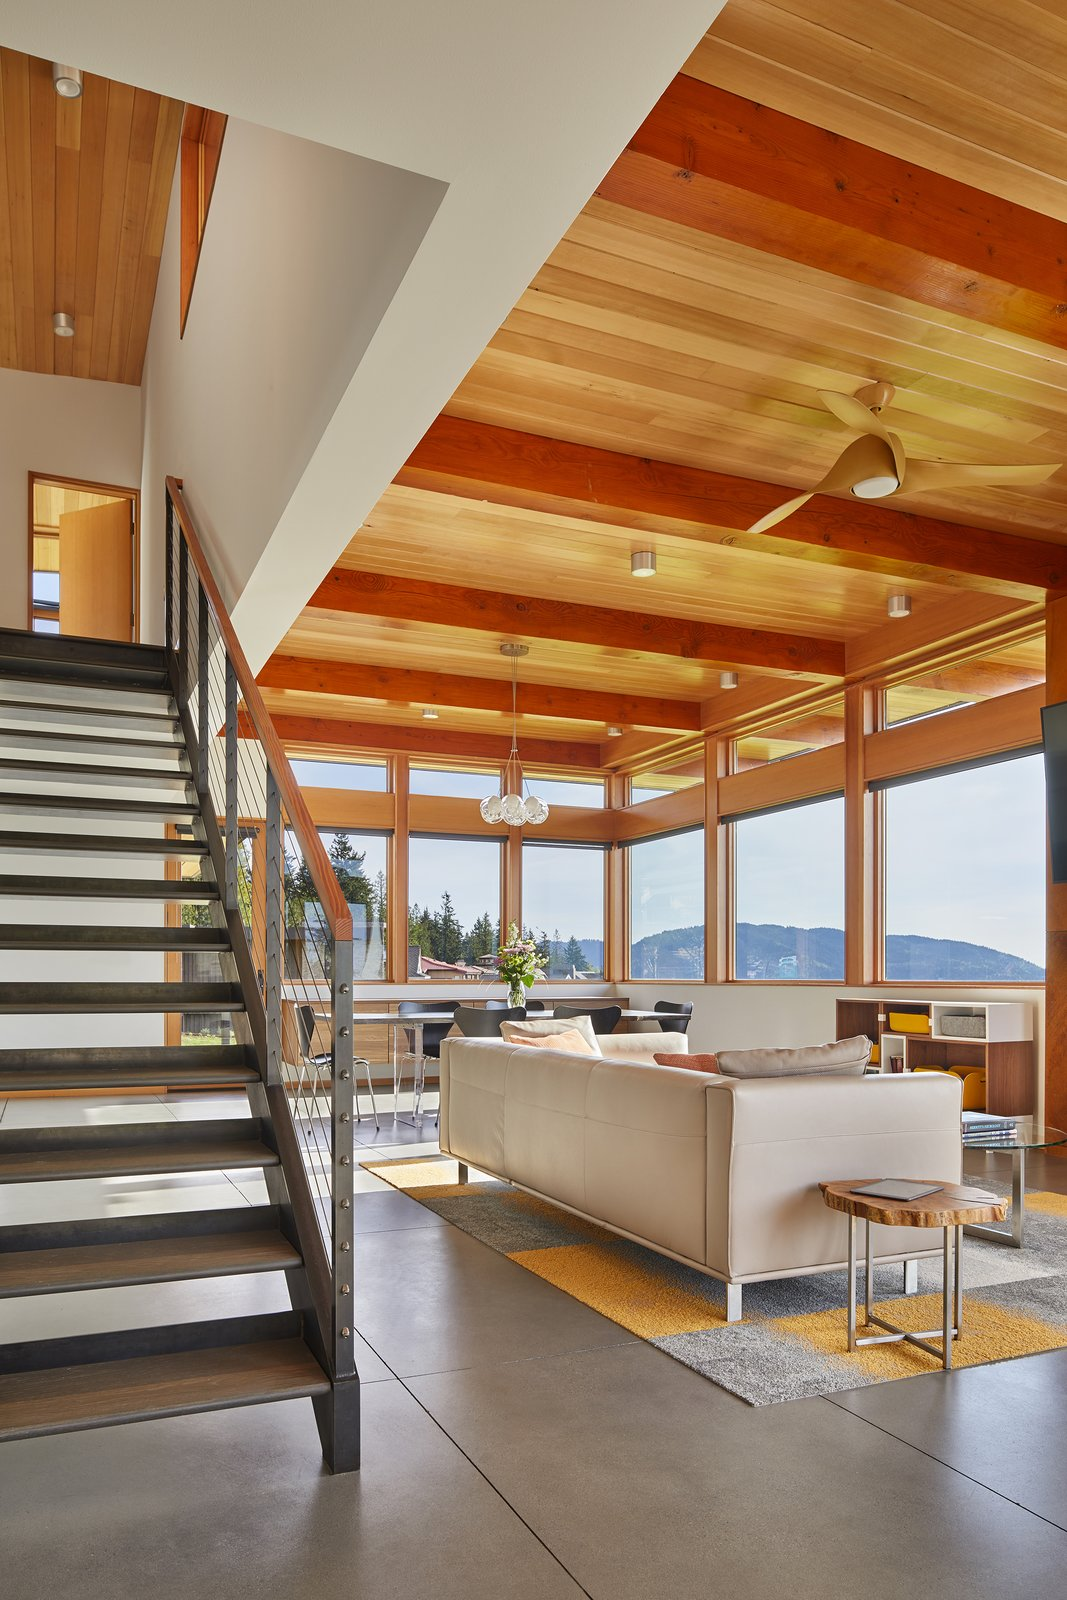 Living Room, Concrete Floor, Sofa, and Ceiling Lighting  Issaquah Highlands Residence by Studio Zerbey Architecture